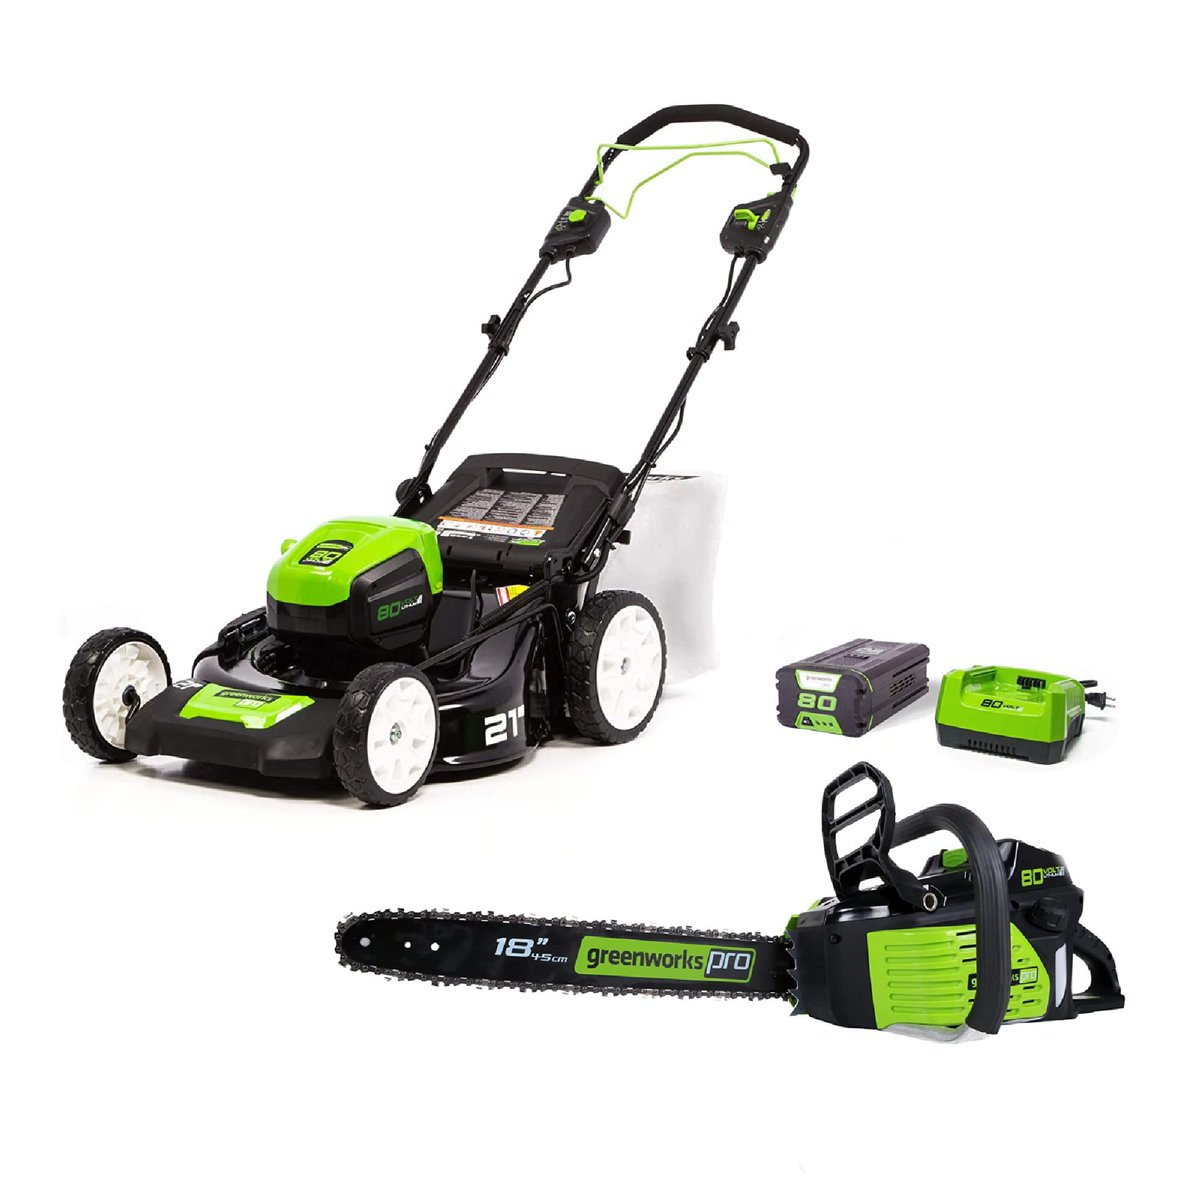 2 Up to 30% off on Greenworks Outdoor Tools